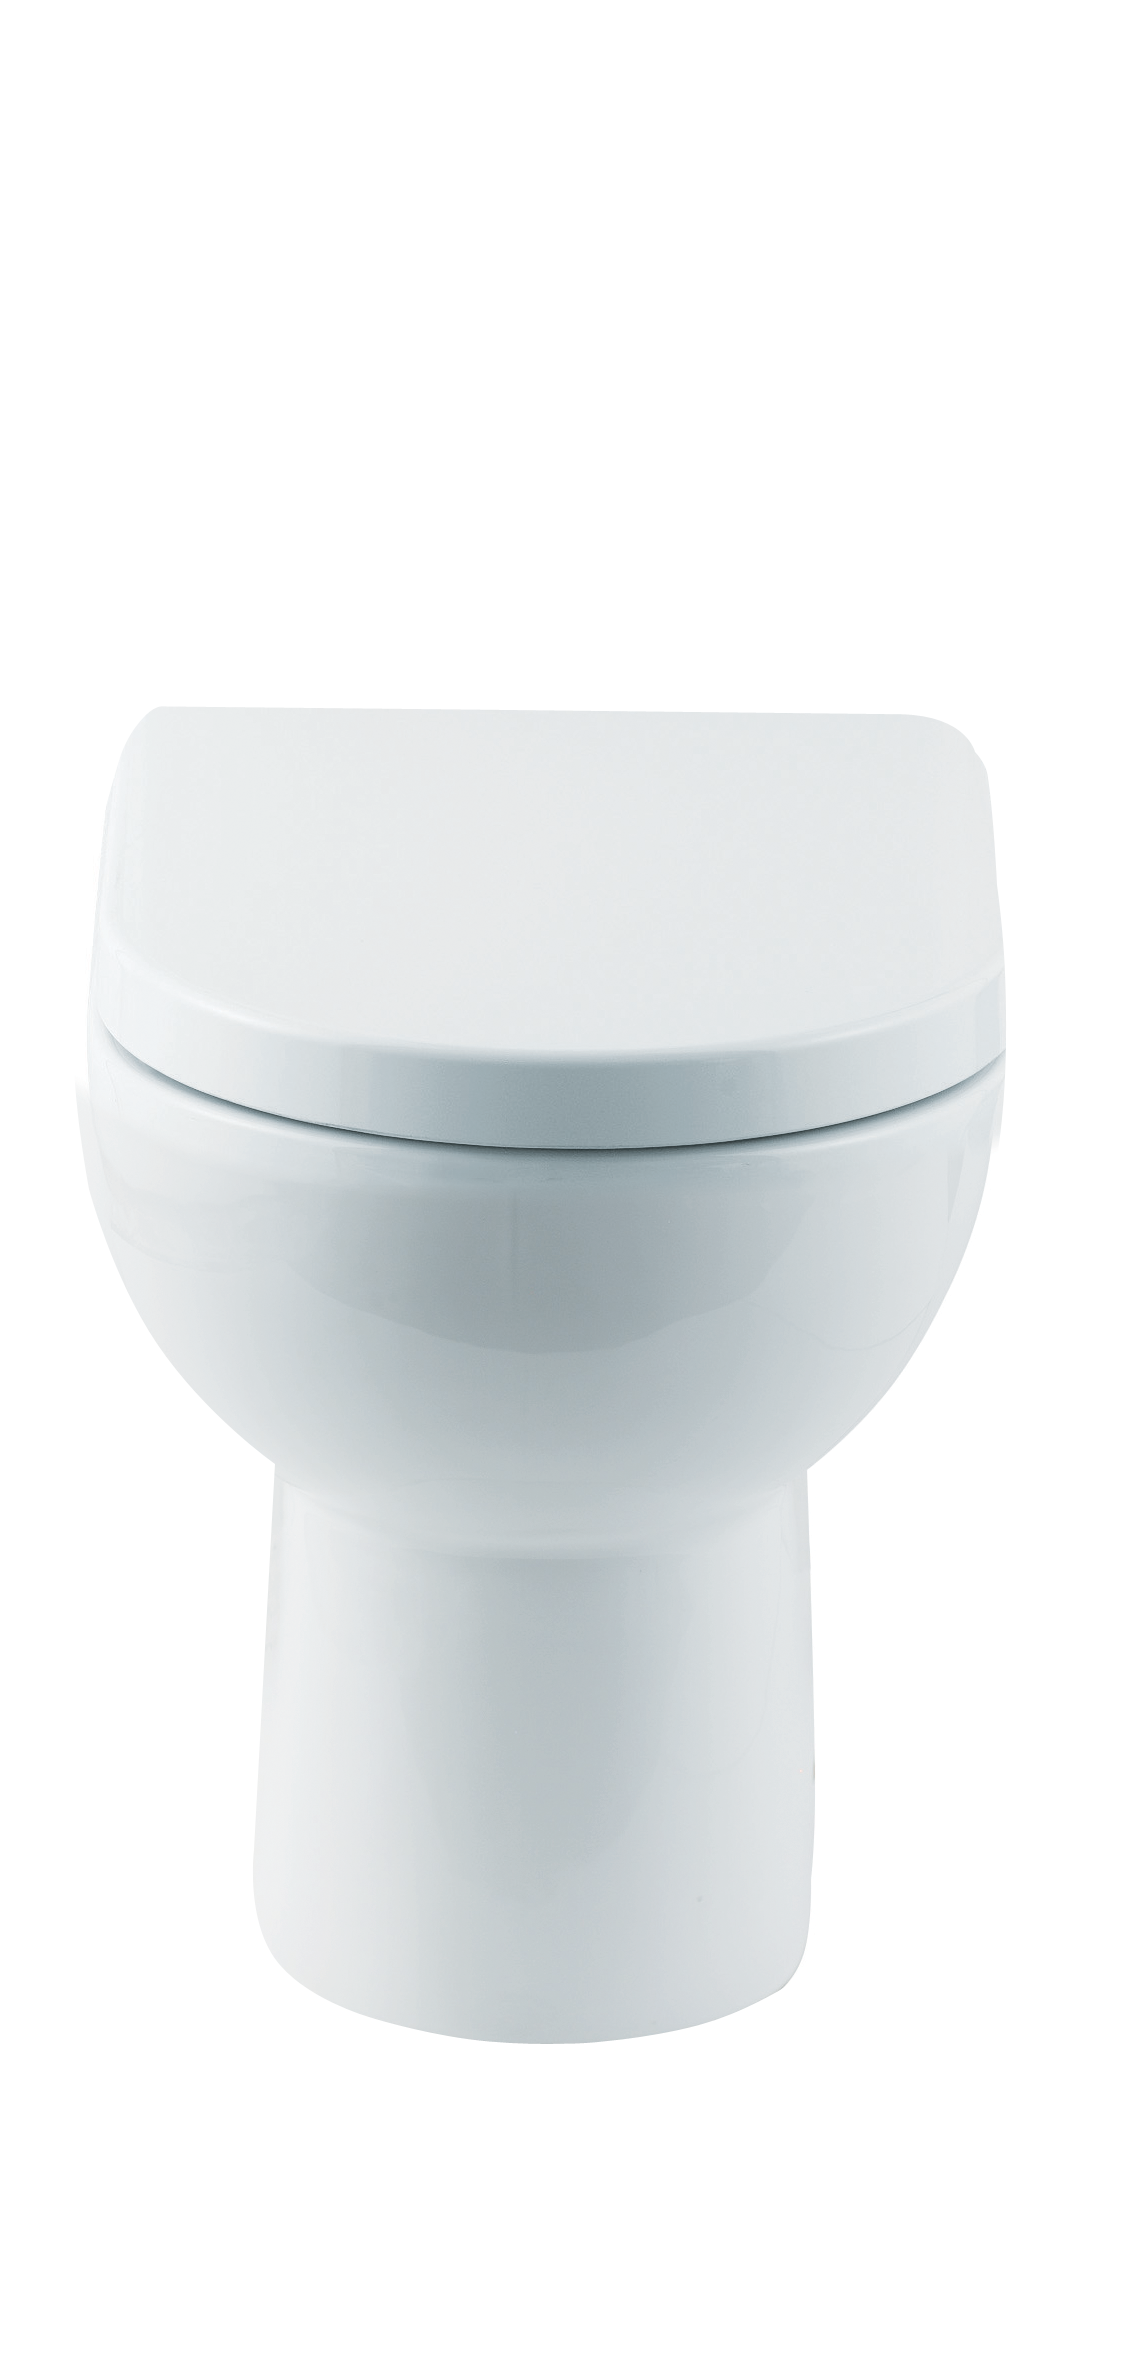 toilet png images are download crazypngm crazy png images download #29293